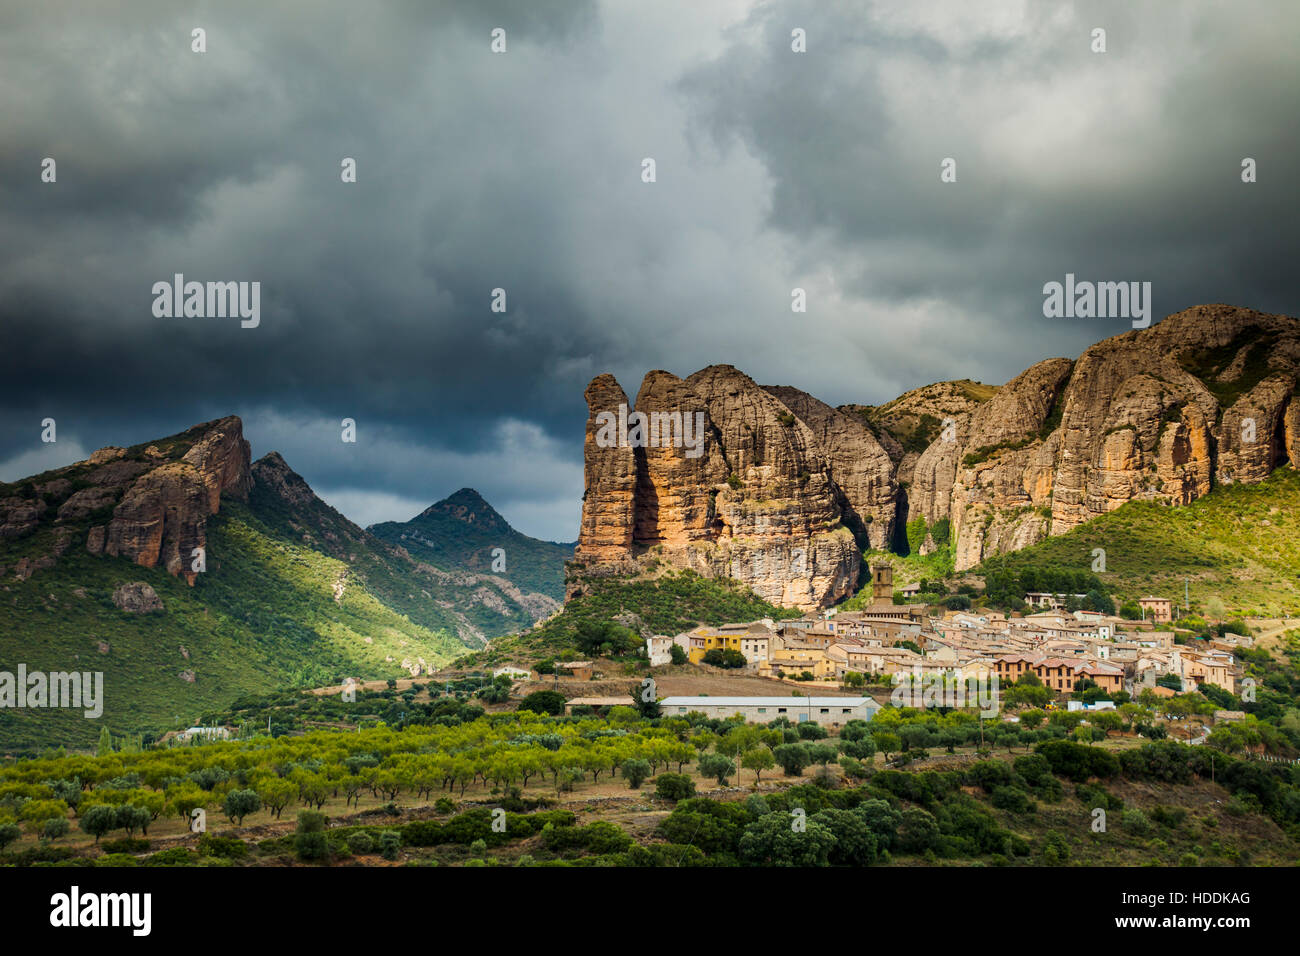 Stormy skies over Mallos de Agüero, an iconic rock formation in Huesca, Aragon, Spain. Pre-Pyrenees. - Stock Image